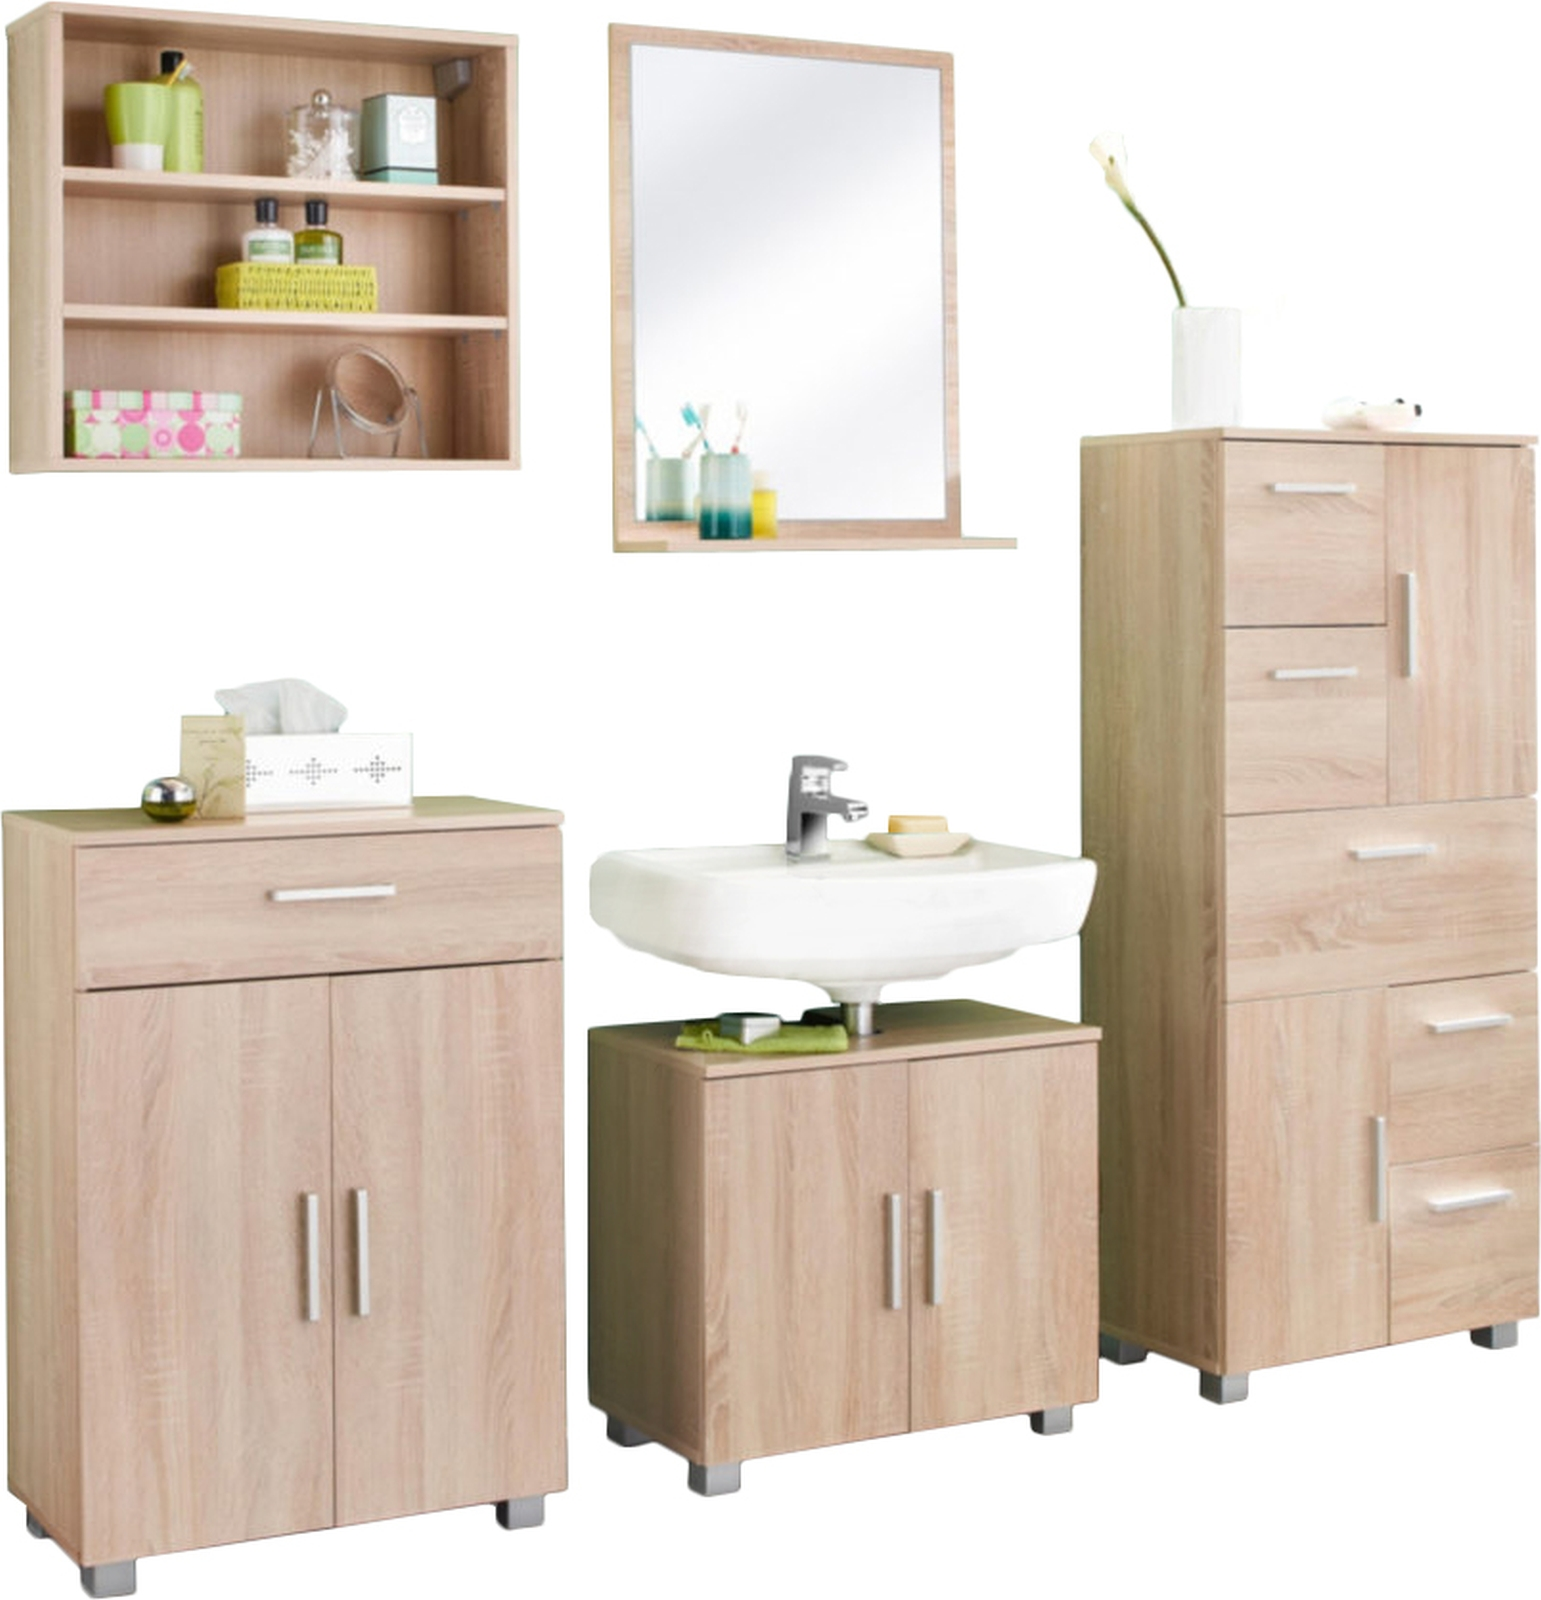 badmbel set mit spiegel interesting affordable gallery of stunning tolle tolles badmoebel. Black Bedroom Furniture Sets. Home Design Ideas